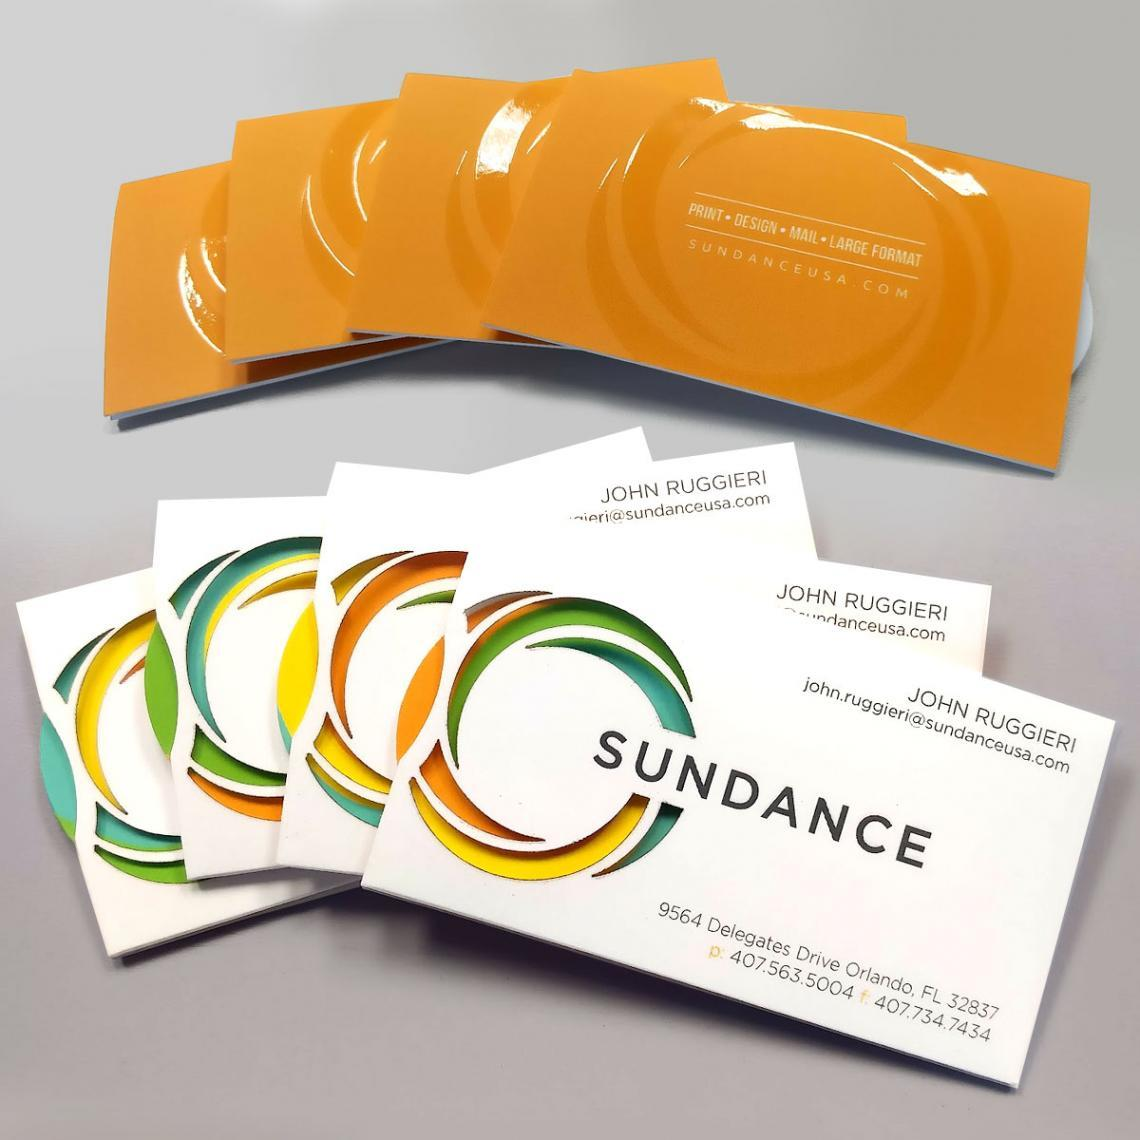 Video sundances spinning business card on 60 second fold reheart Choice Image